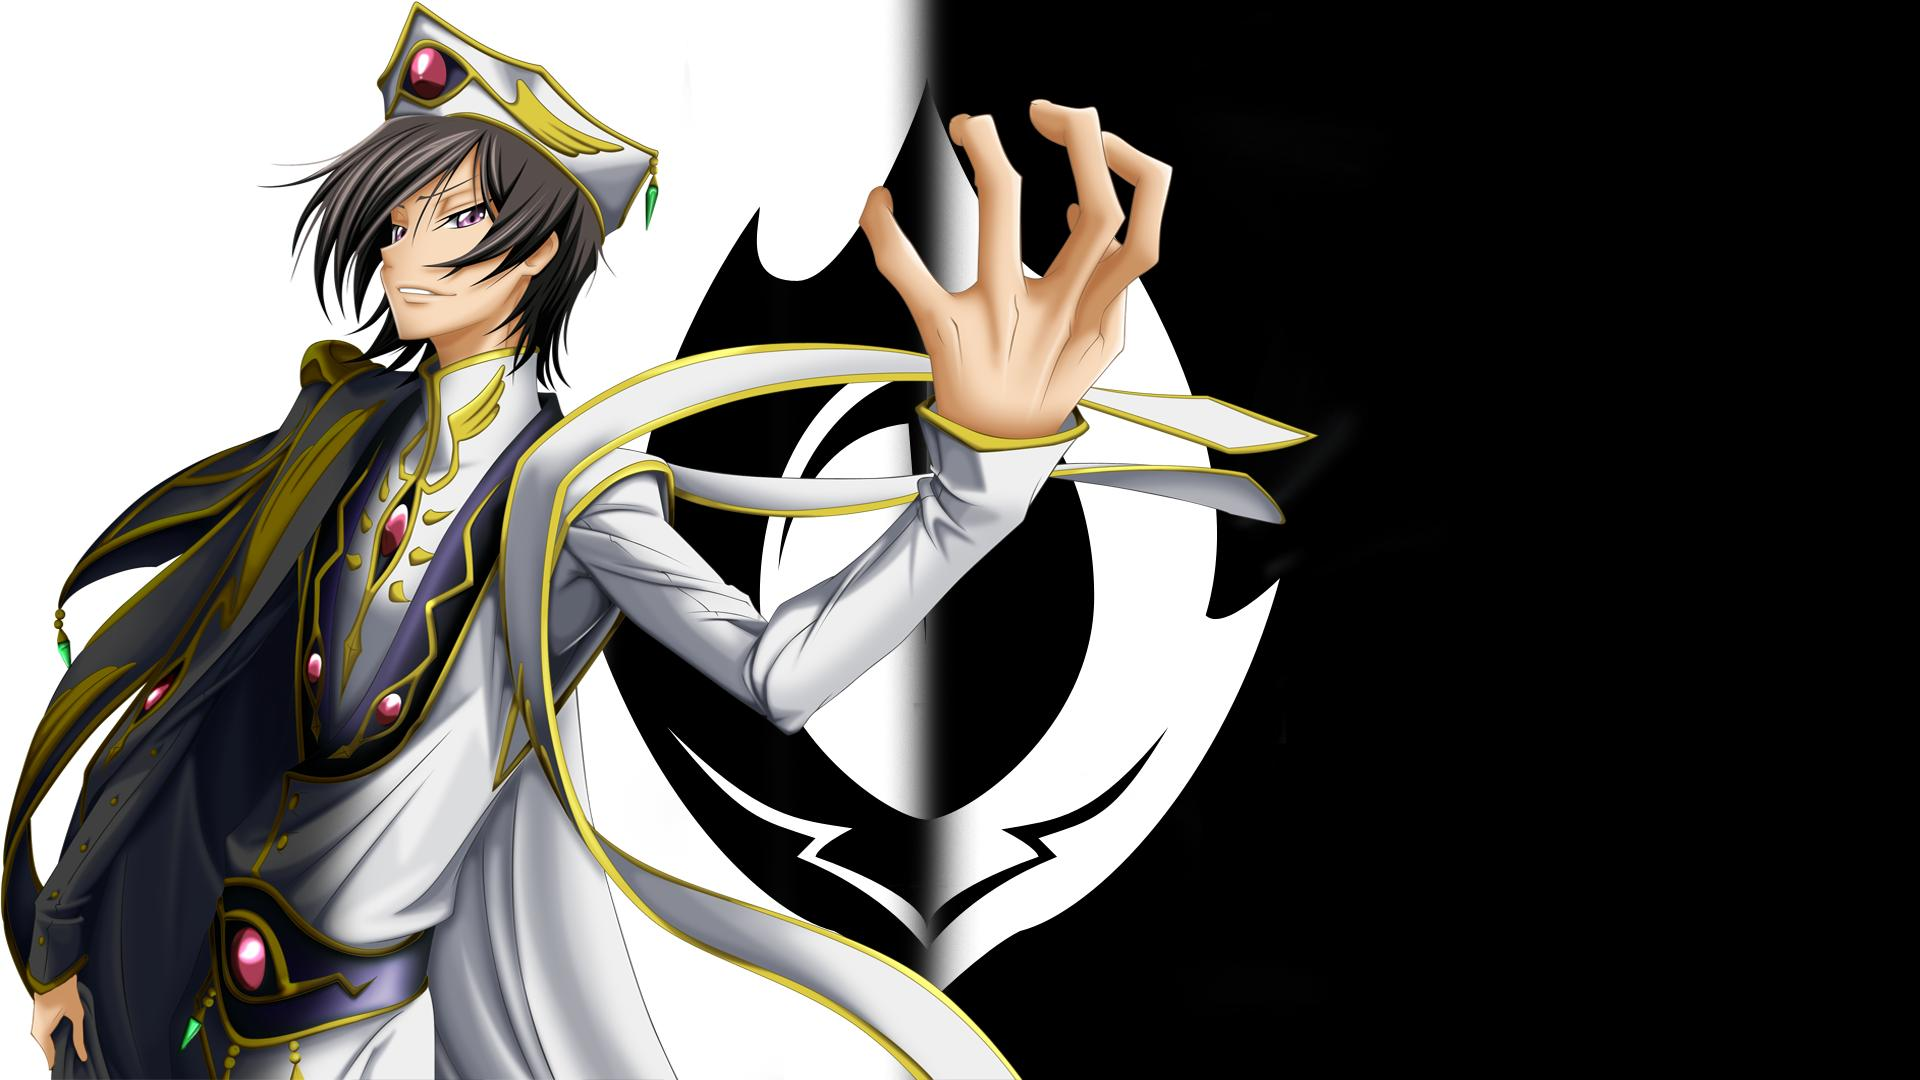 64 <b>Code Geass</b> HD <b>Wallpapers</b> | <b>Backgrounds</b> - <b>Wallpaper</b> Abyss